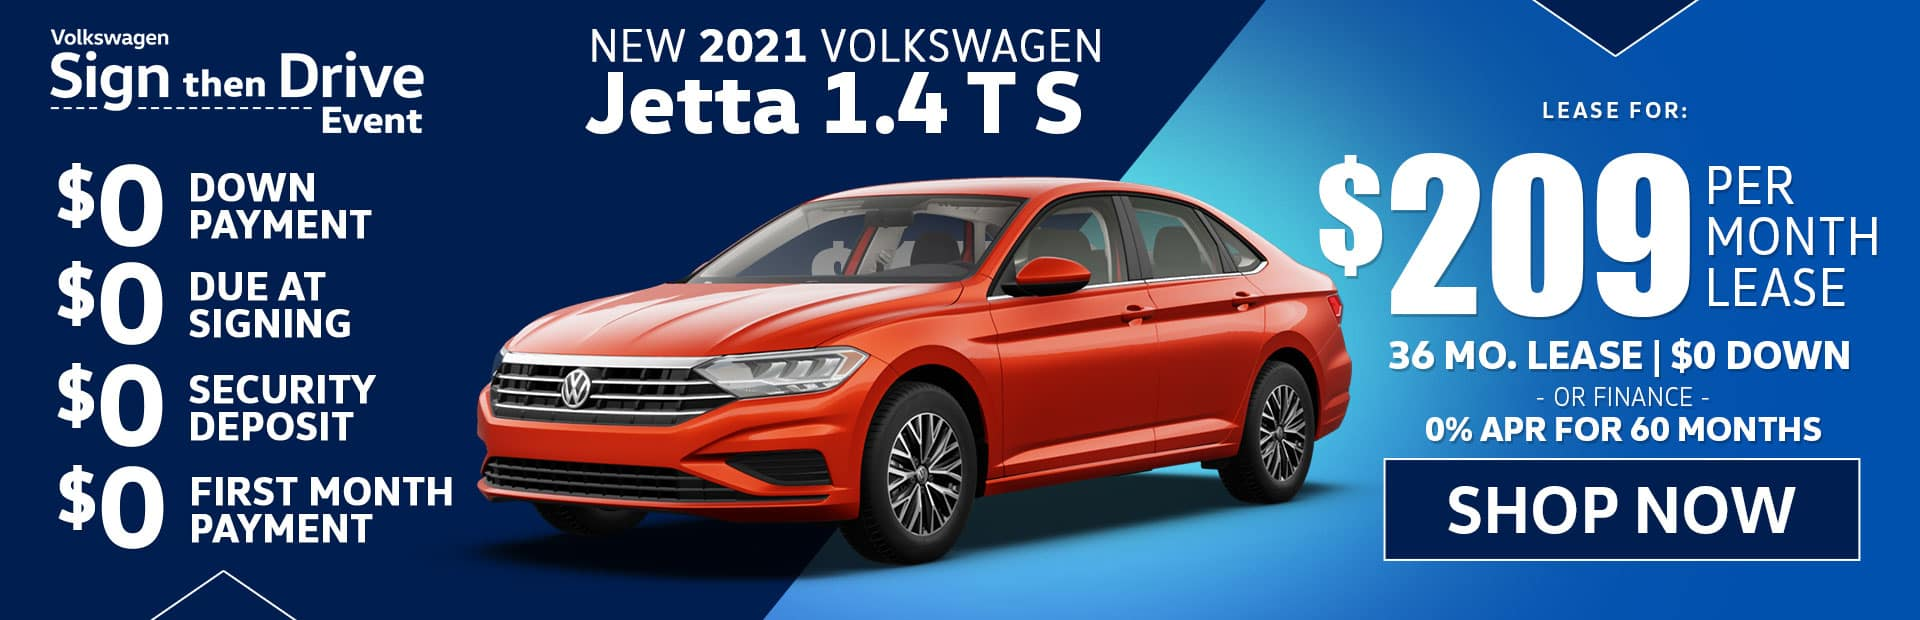 New 2021 VW Jetta S Lease Special In glendale california near los angeles